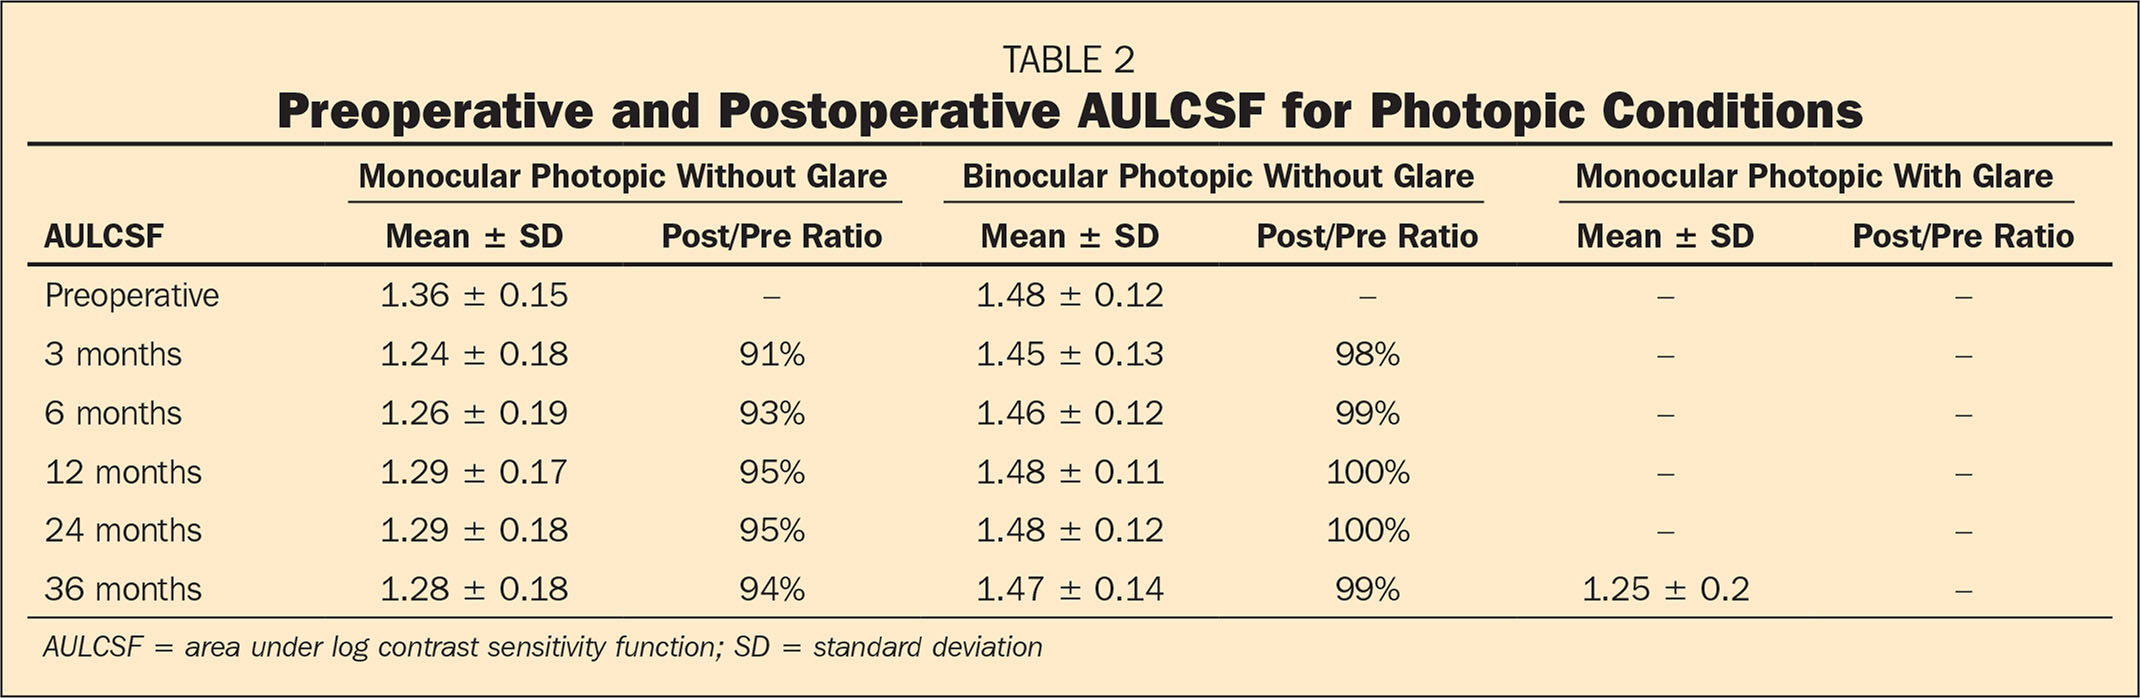 Preoperative and Postoperative AULCSF for Photopic Conditions